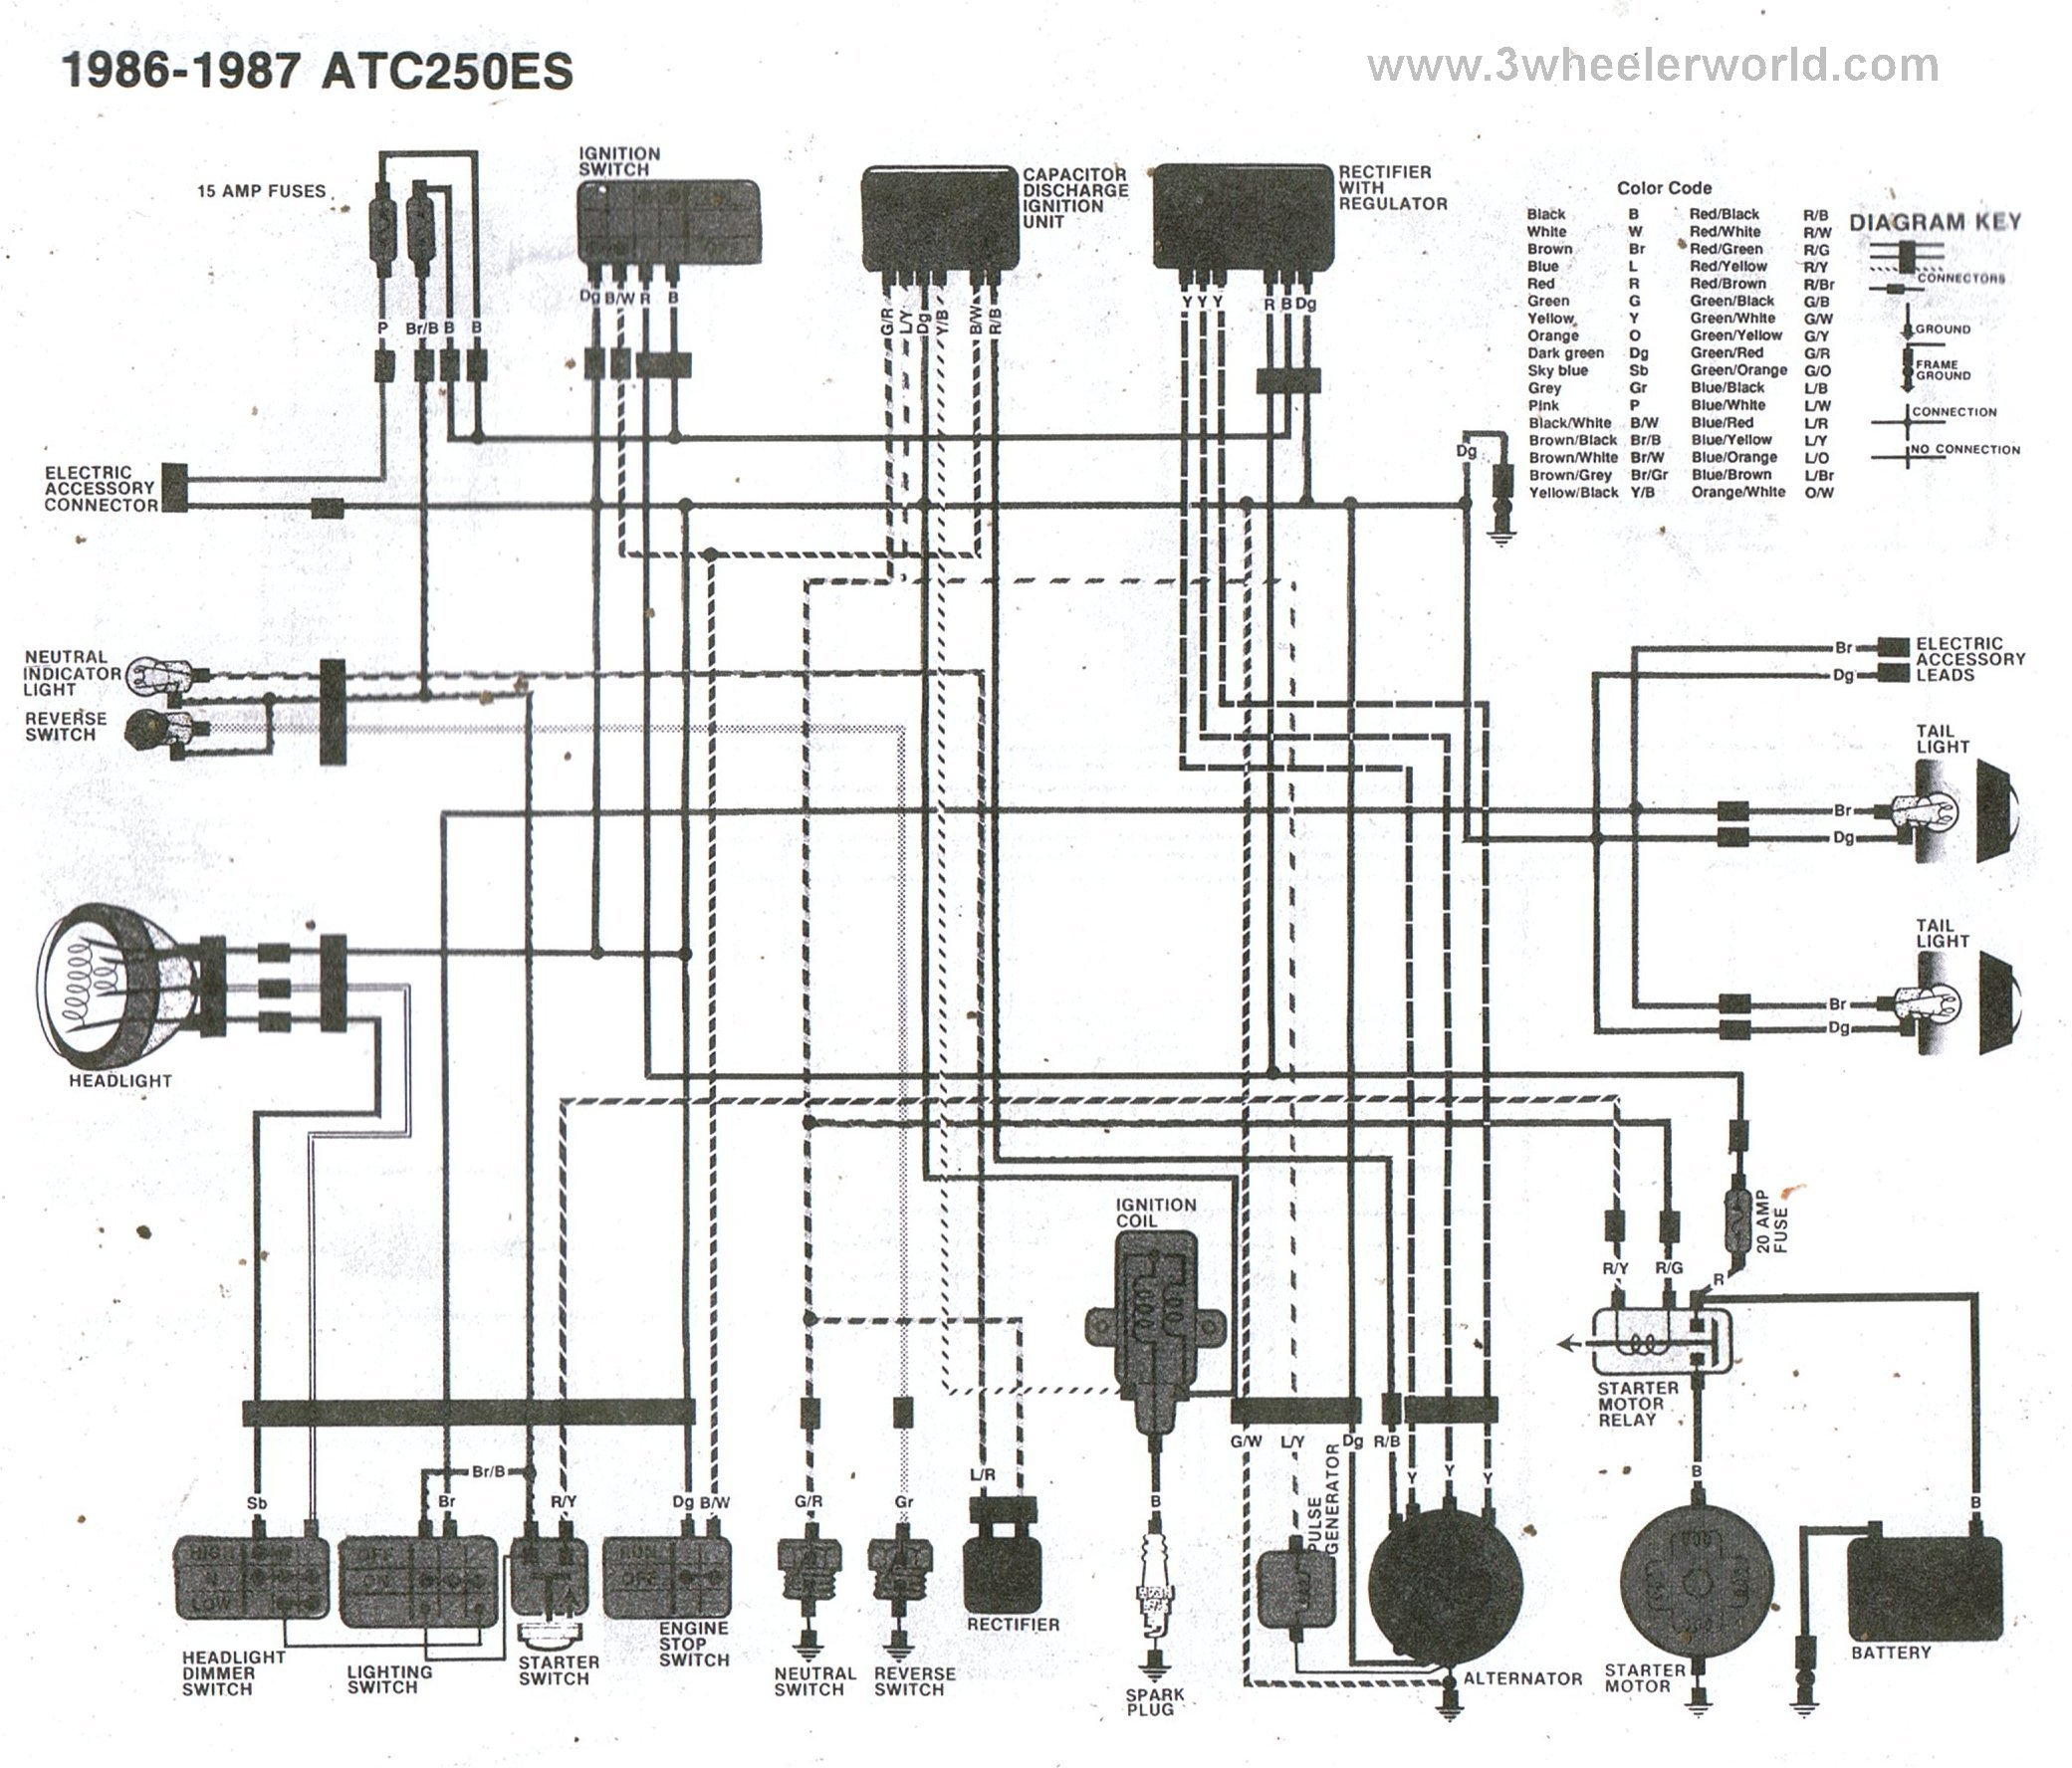 ATC250ESx86Thru87 3 wheeler world tech help honda wiring diagrams 1986 honda rebel 250 wiring diagram at bayanpartner.co